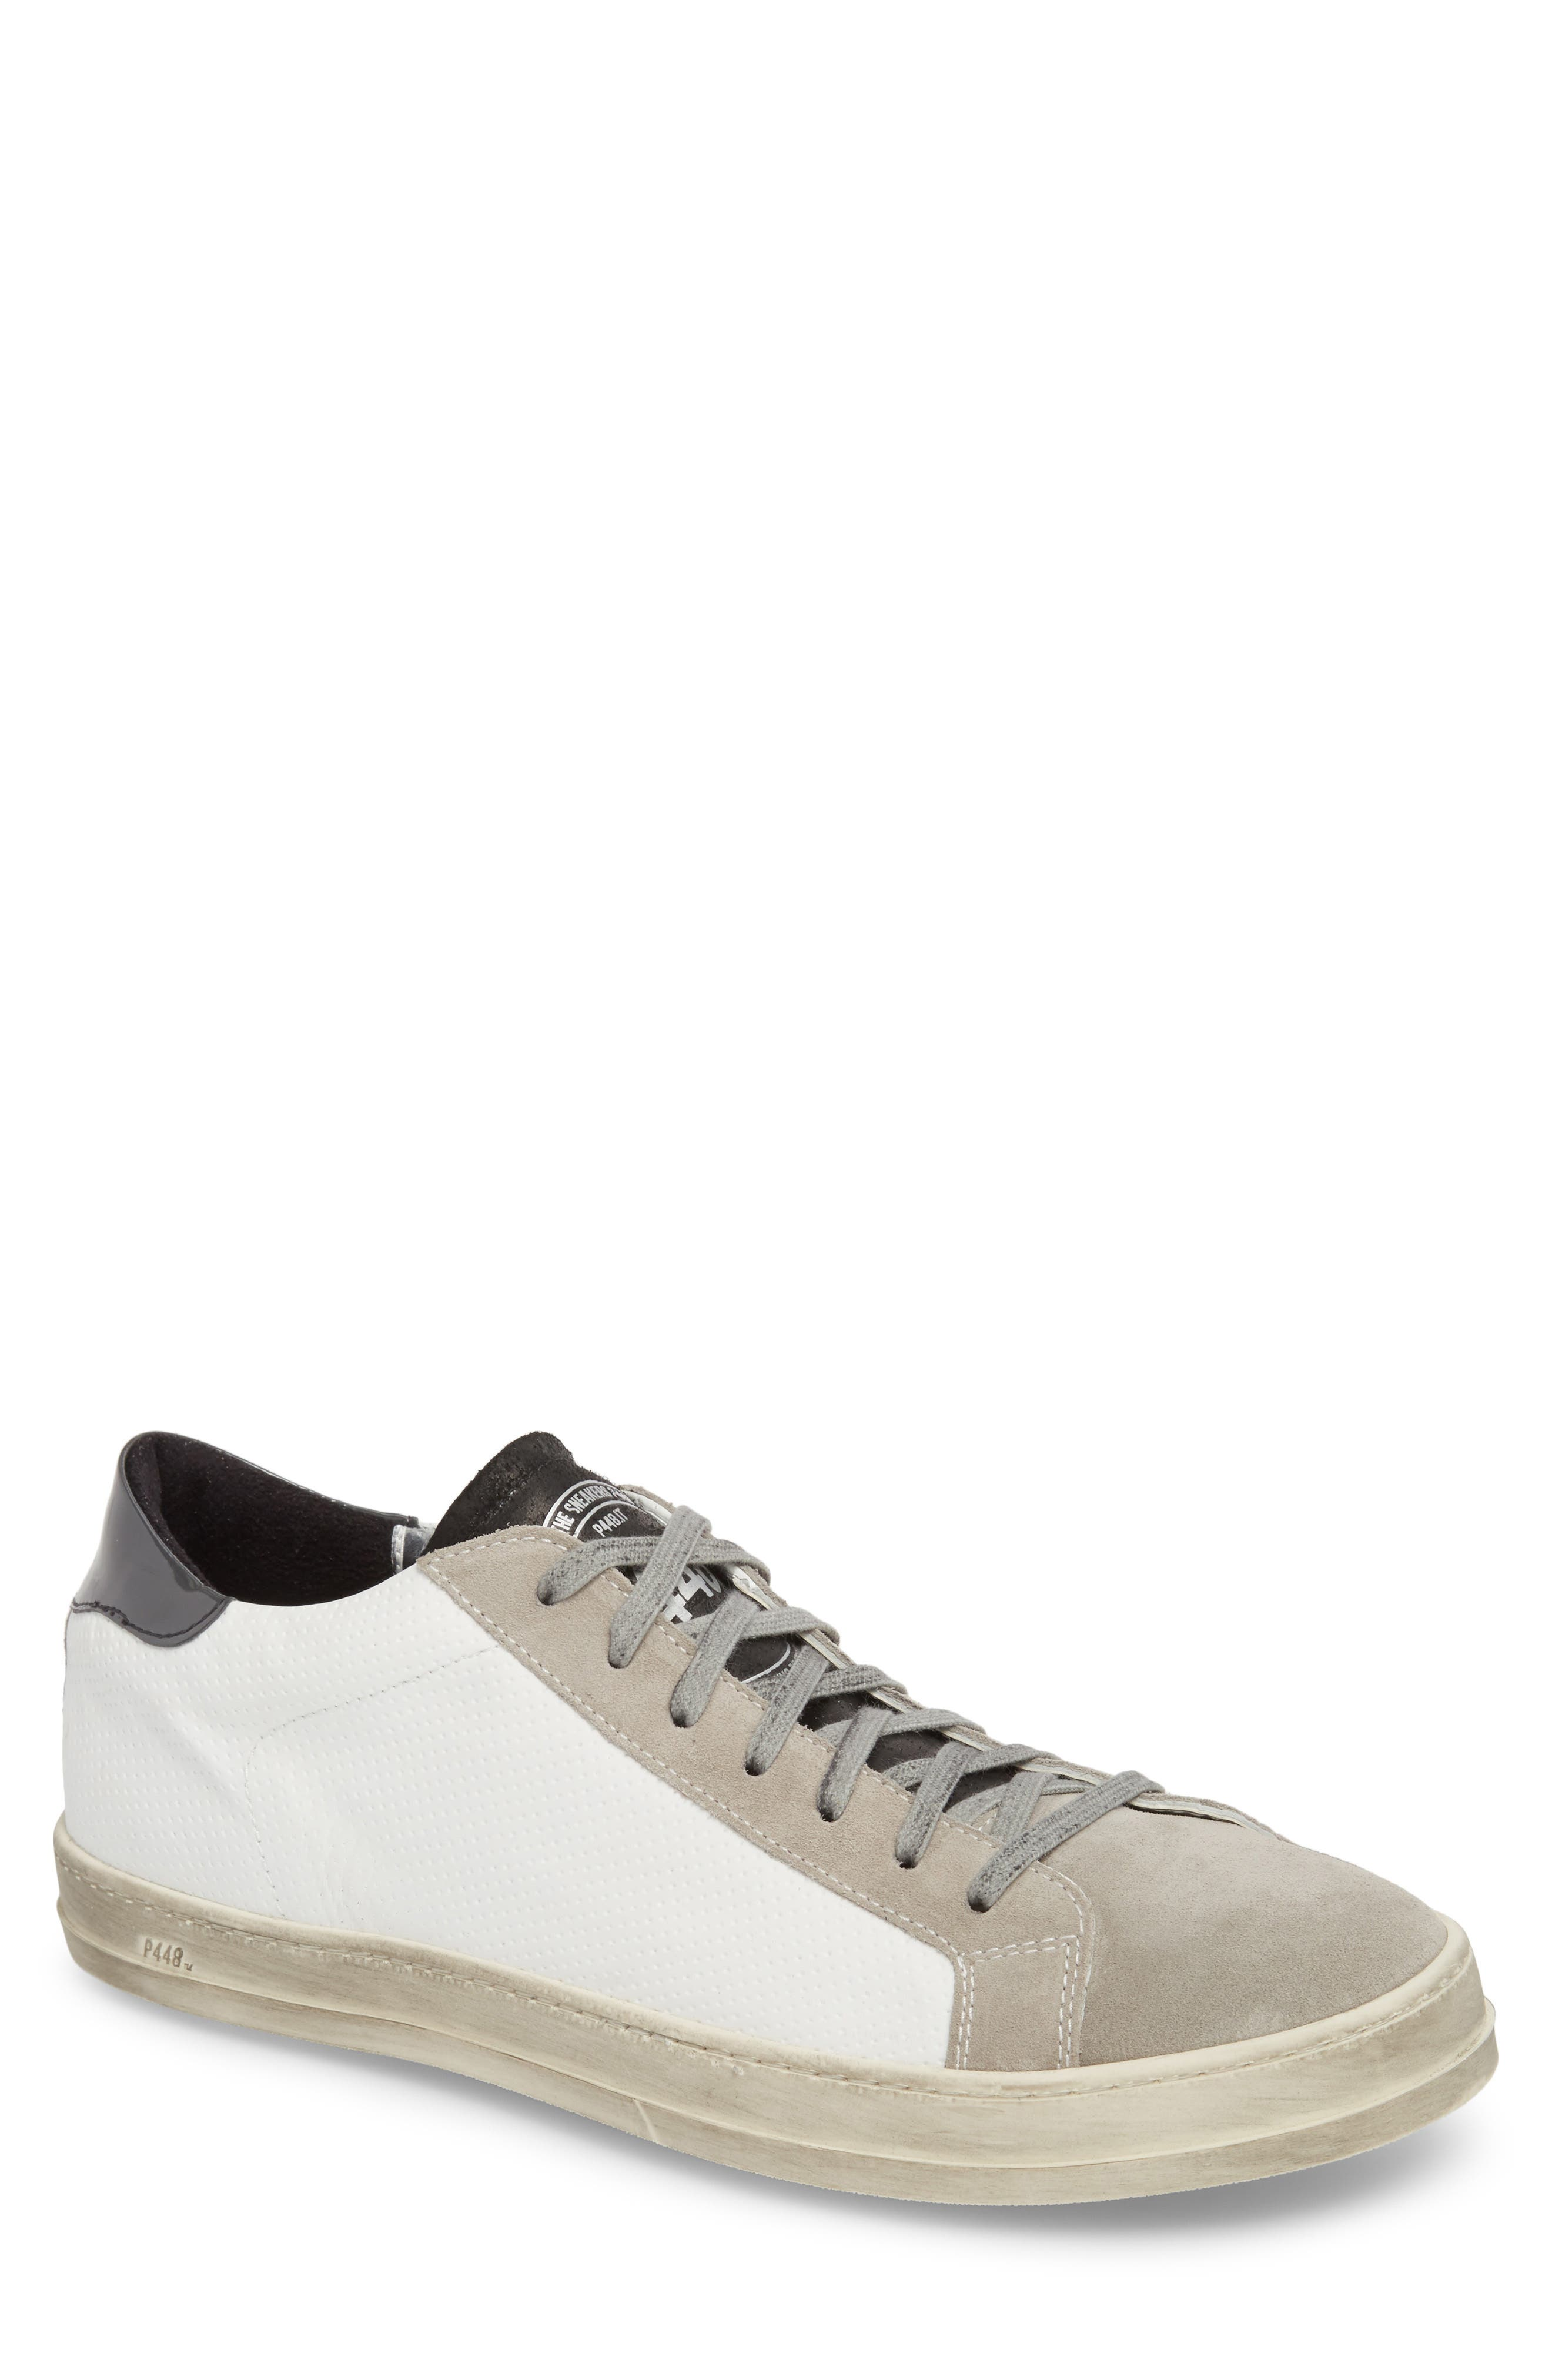 John Mix Low Top Sneaker,                         Main,                         color, White